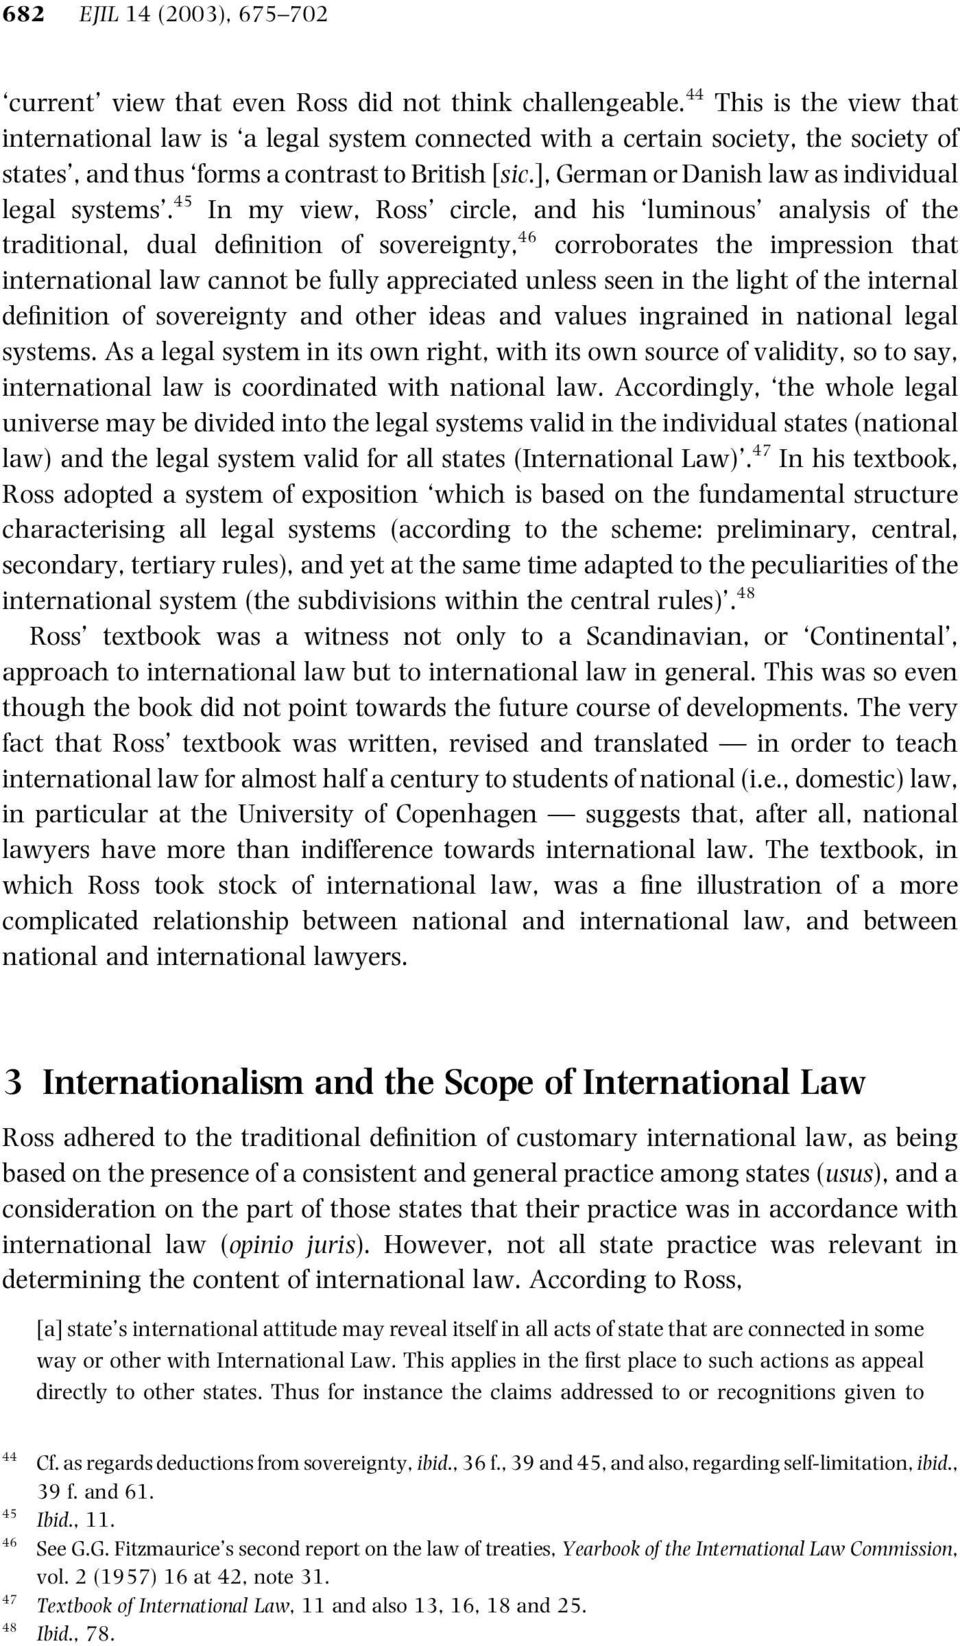 ], German or Danish law as individual legal systems.